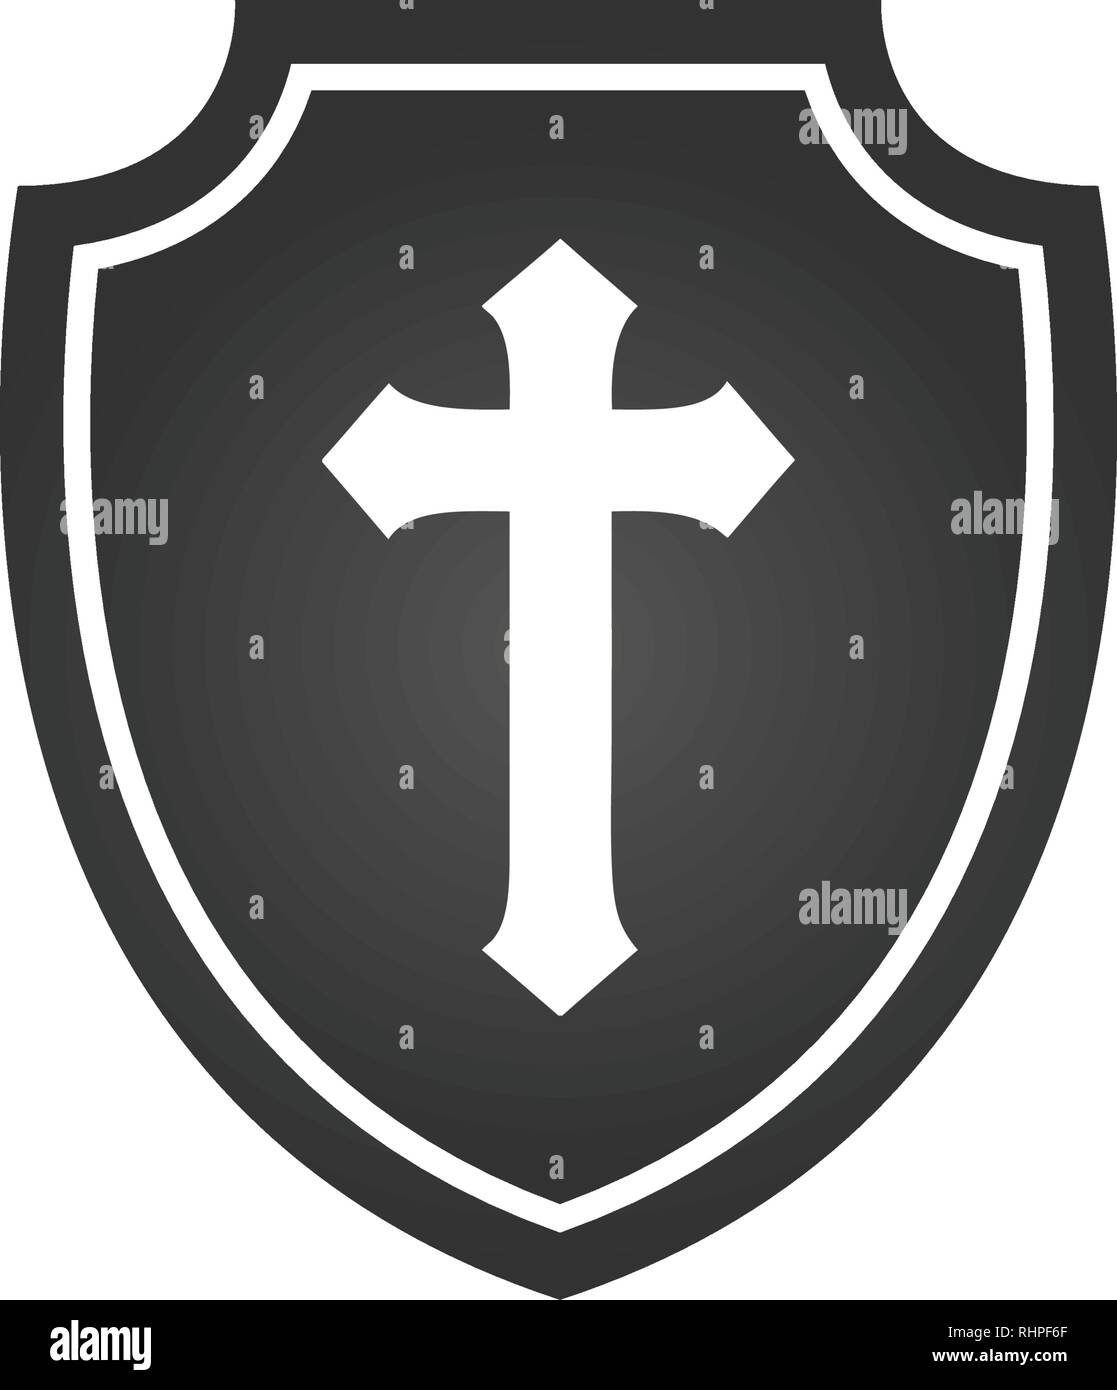 Christian cross and shield of faith. Christian church vector logo. Missionary icon. Religious symbol. Protection, safety, - Stock Image